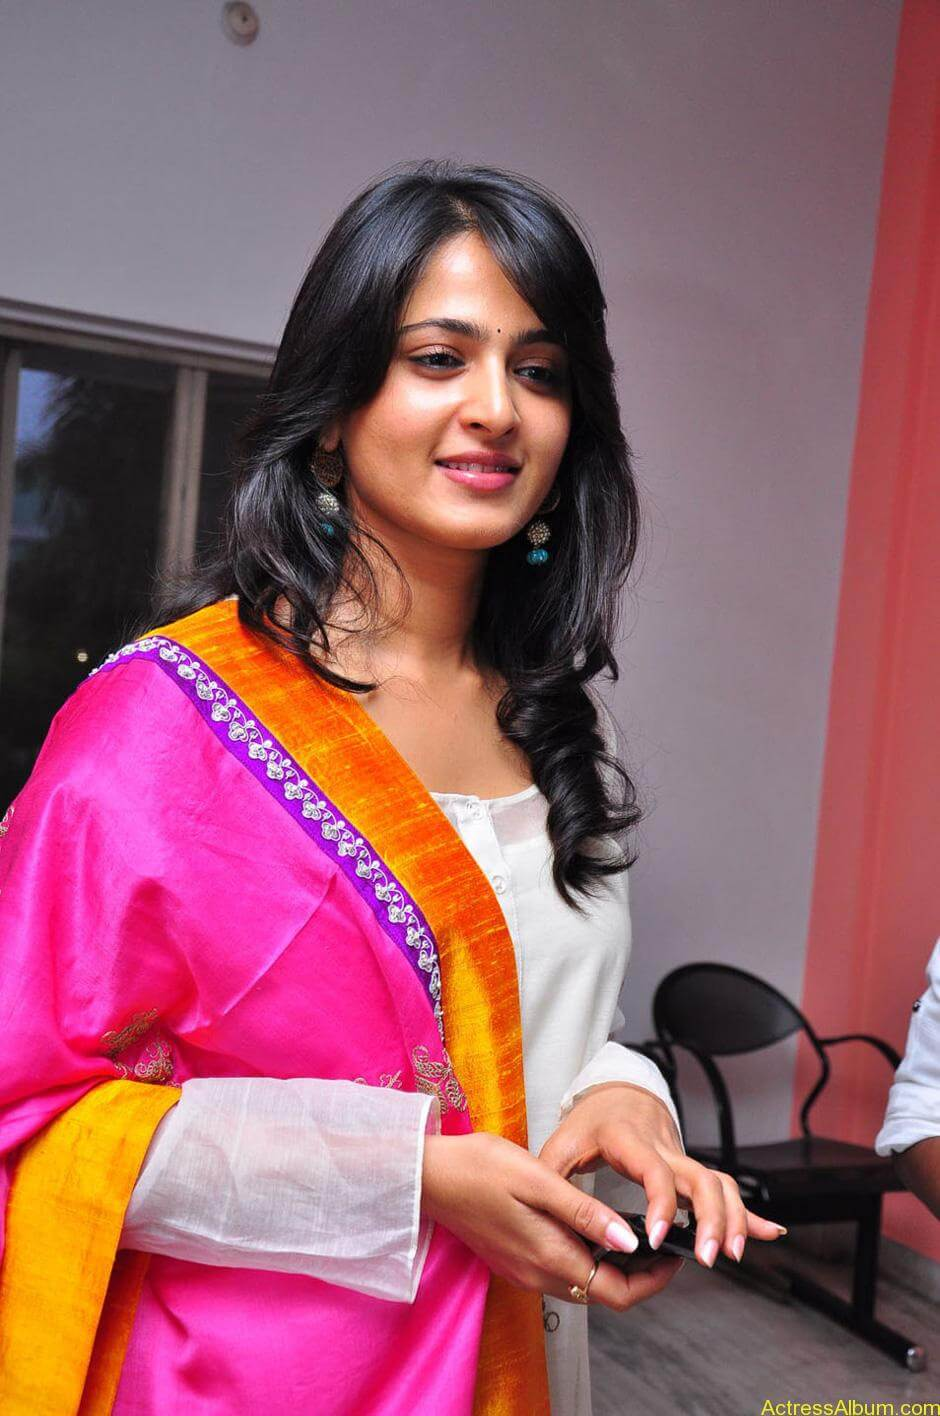 Anushka-Shetty-05-23-2011-Stills-008